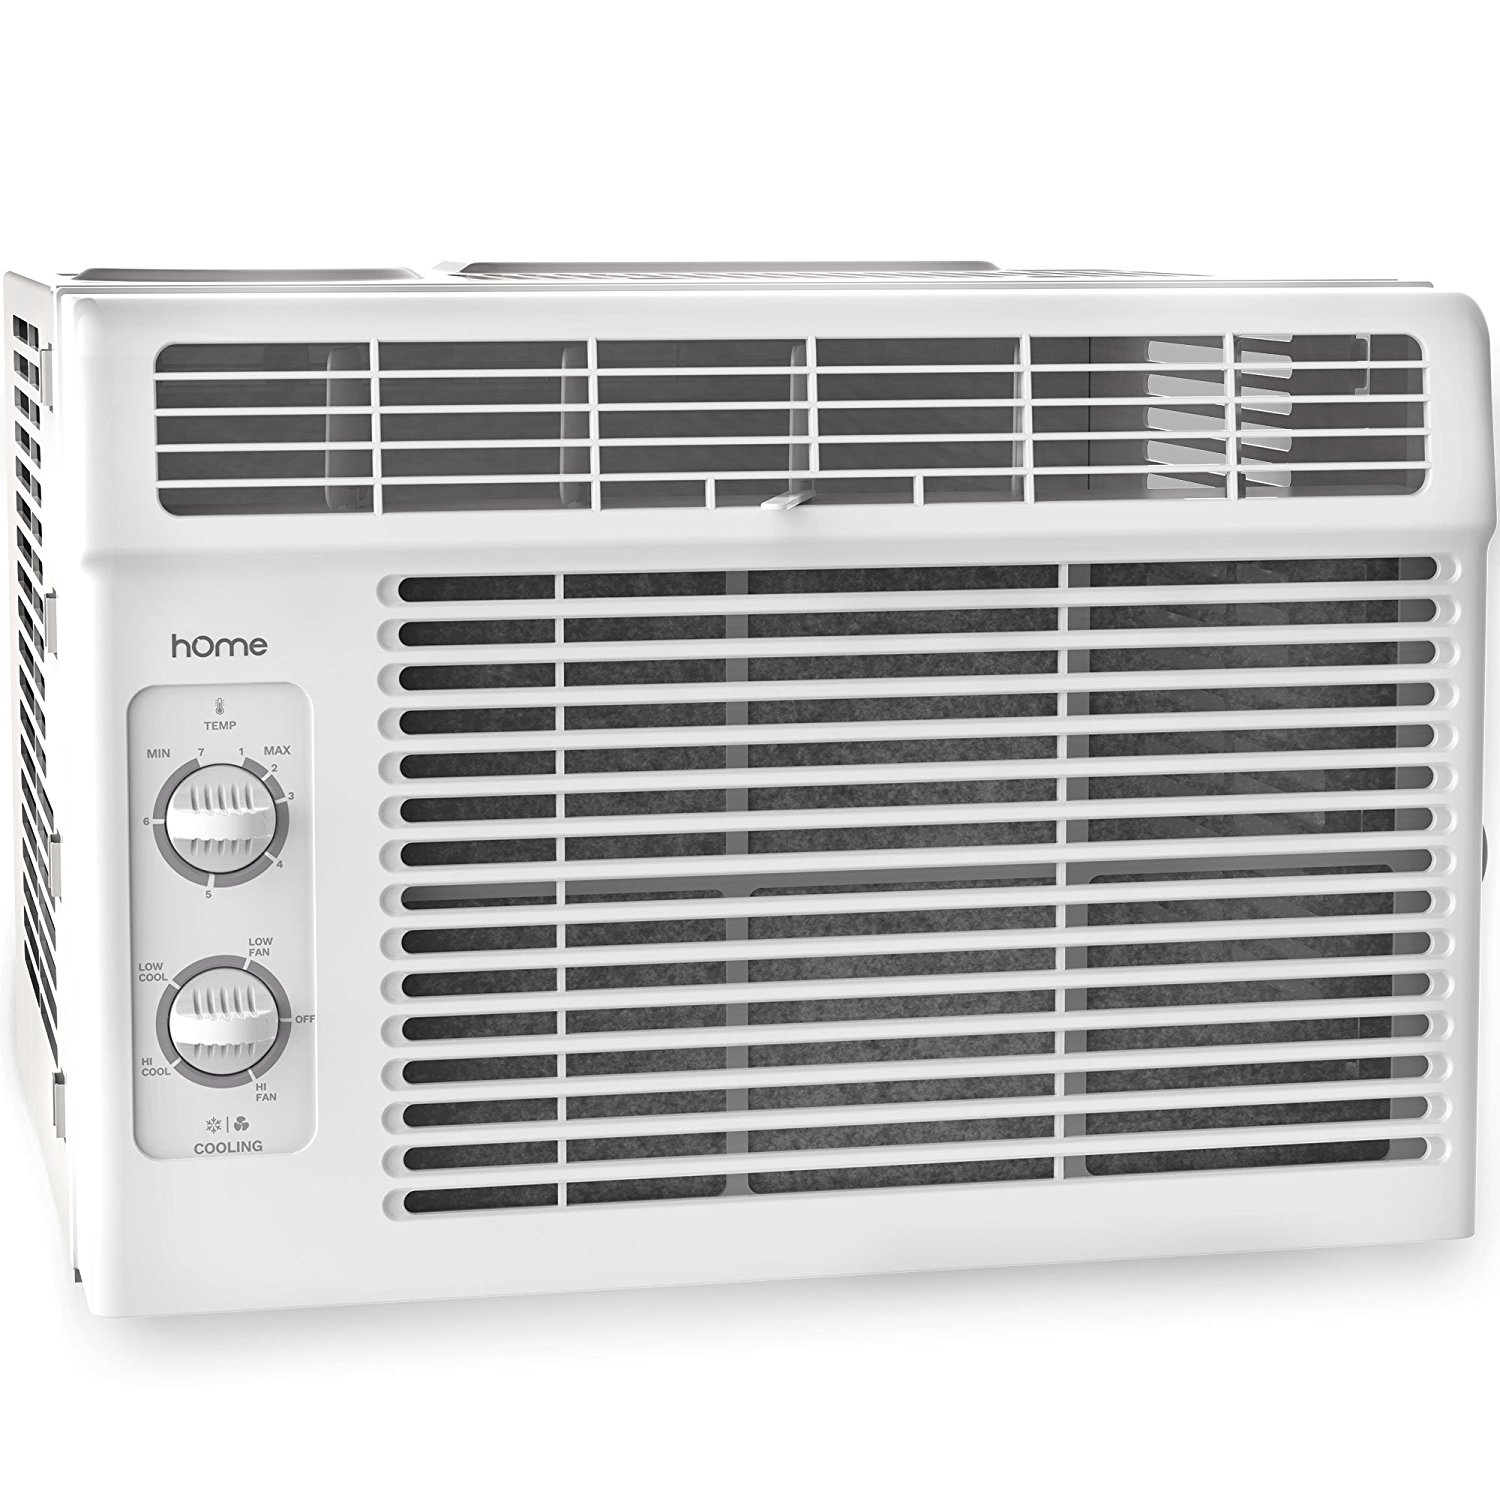 Review of hOmeLabs Cold Window Air Conditioner 5000 BTU - Small Cool AC Unit Kit with 7 Speed Fan Eco Filter Support Bracket Side Panels Covers - Mini Electric White Auto AC Best for RV or Small Hot Room